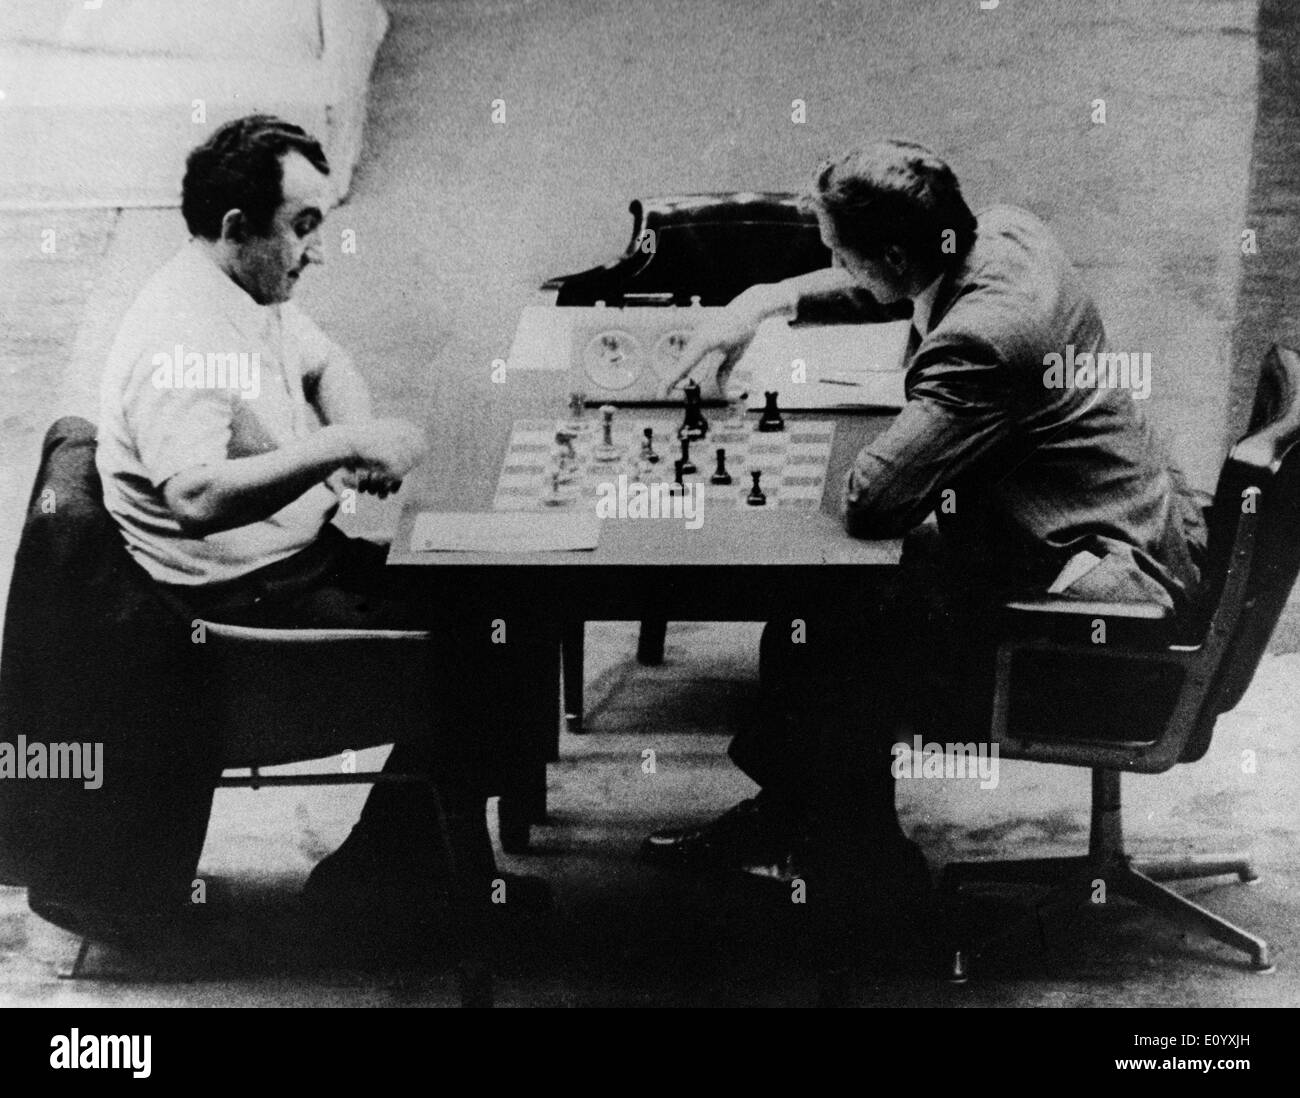 Oct. 04, 1971 - Buenos Aires, , Argentina - Former world chess champion BOBBY FISCHER of the United States, arrested - Stock Image